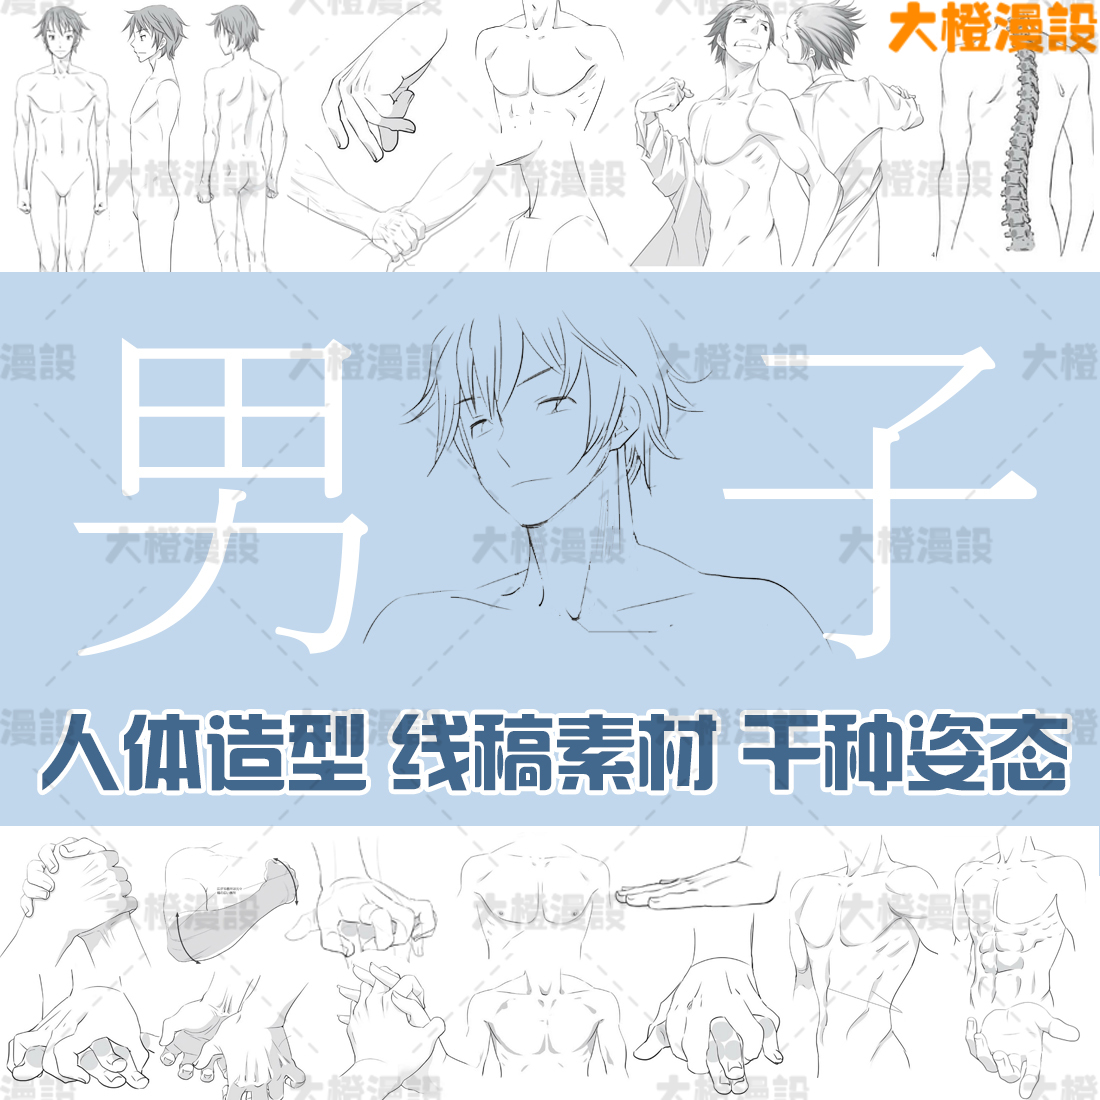 Material mans hand drawn material line draft sketch reference copy human body painting cartoon dynamic modeling and